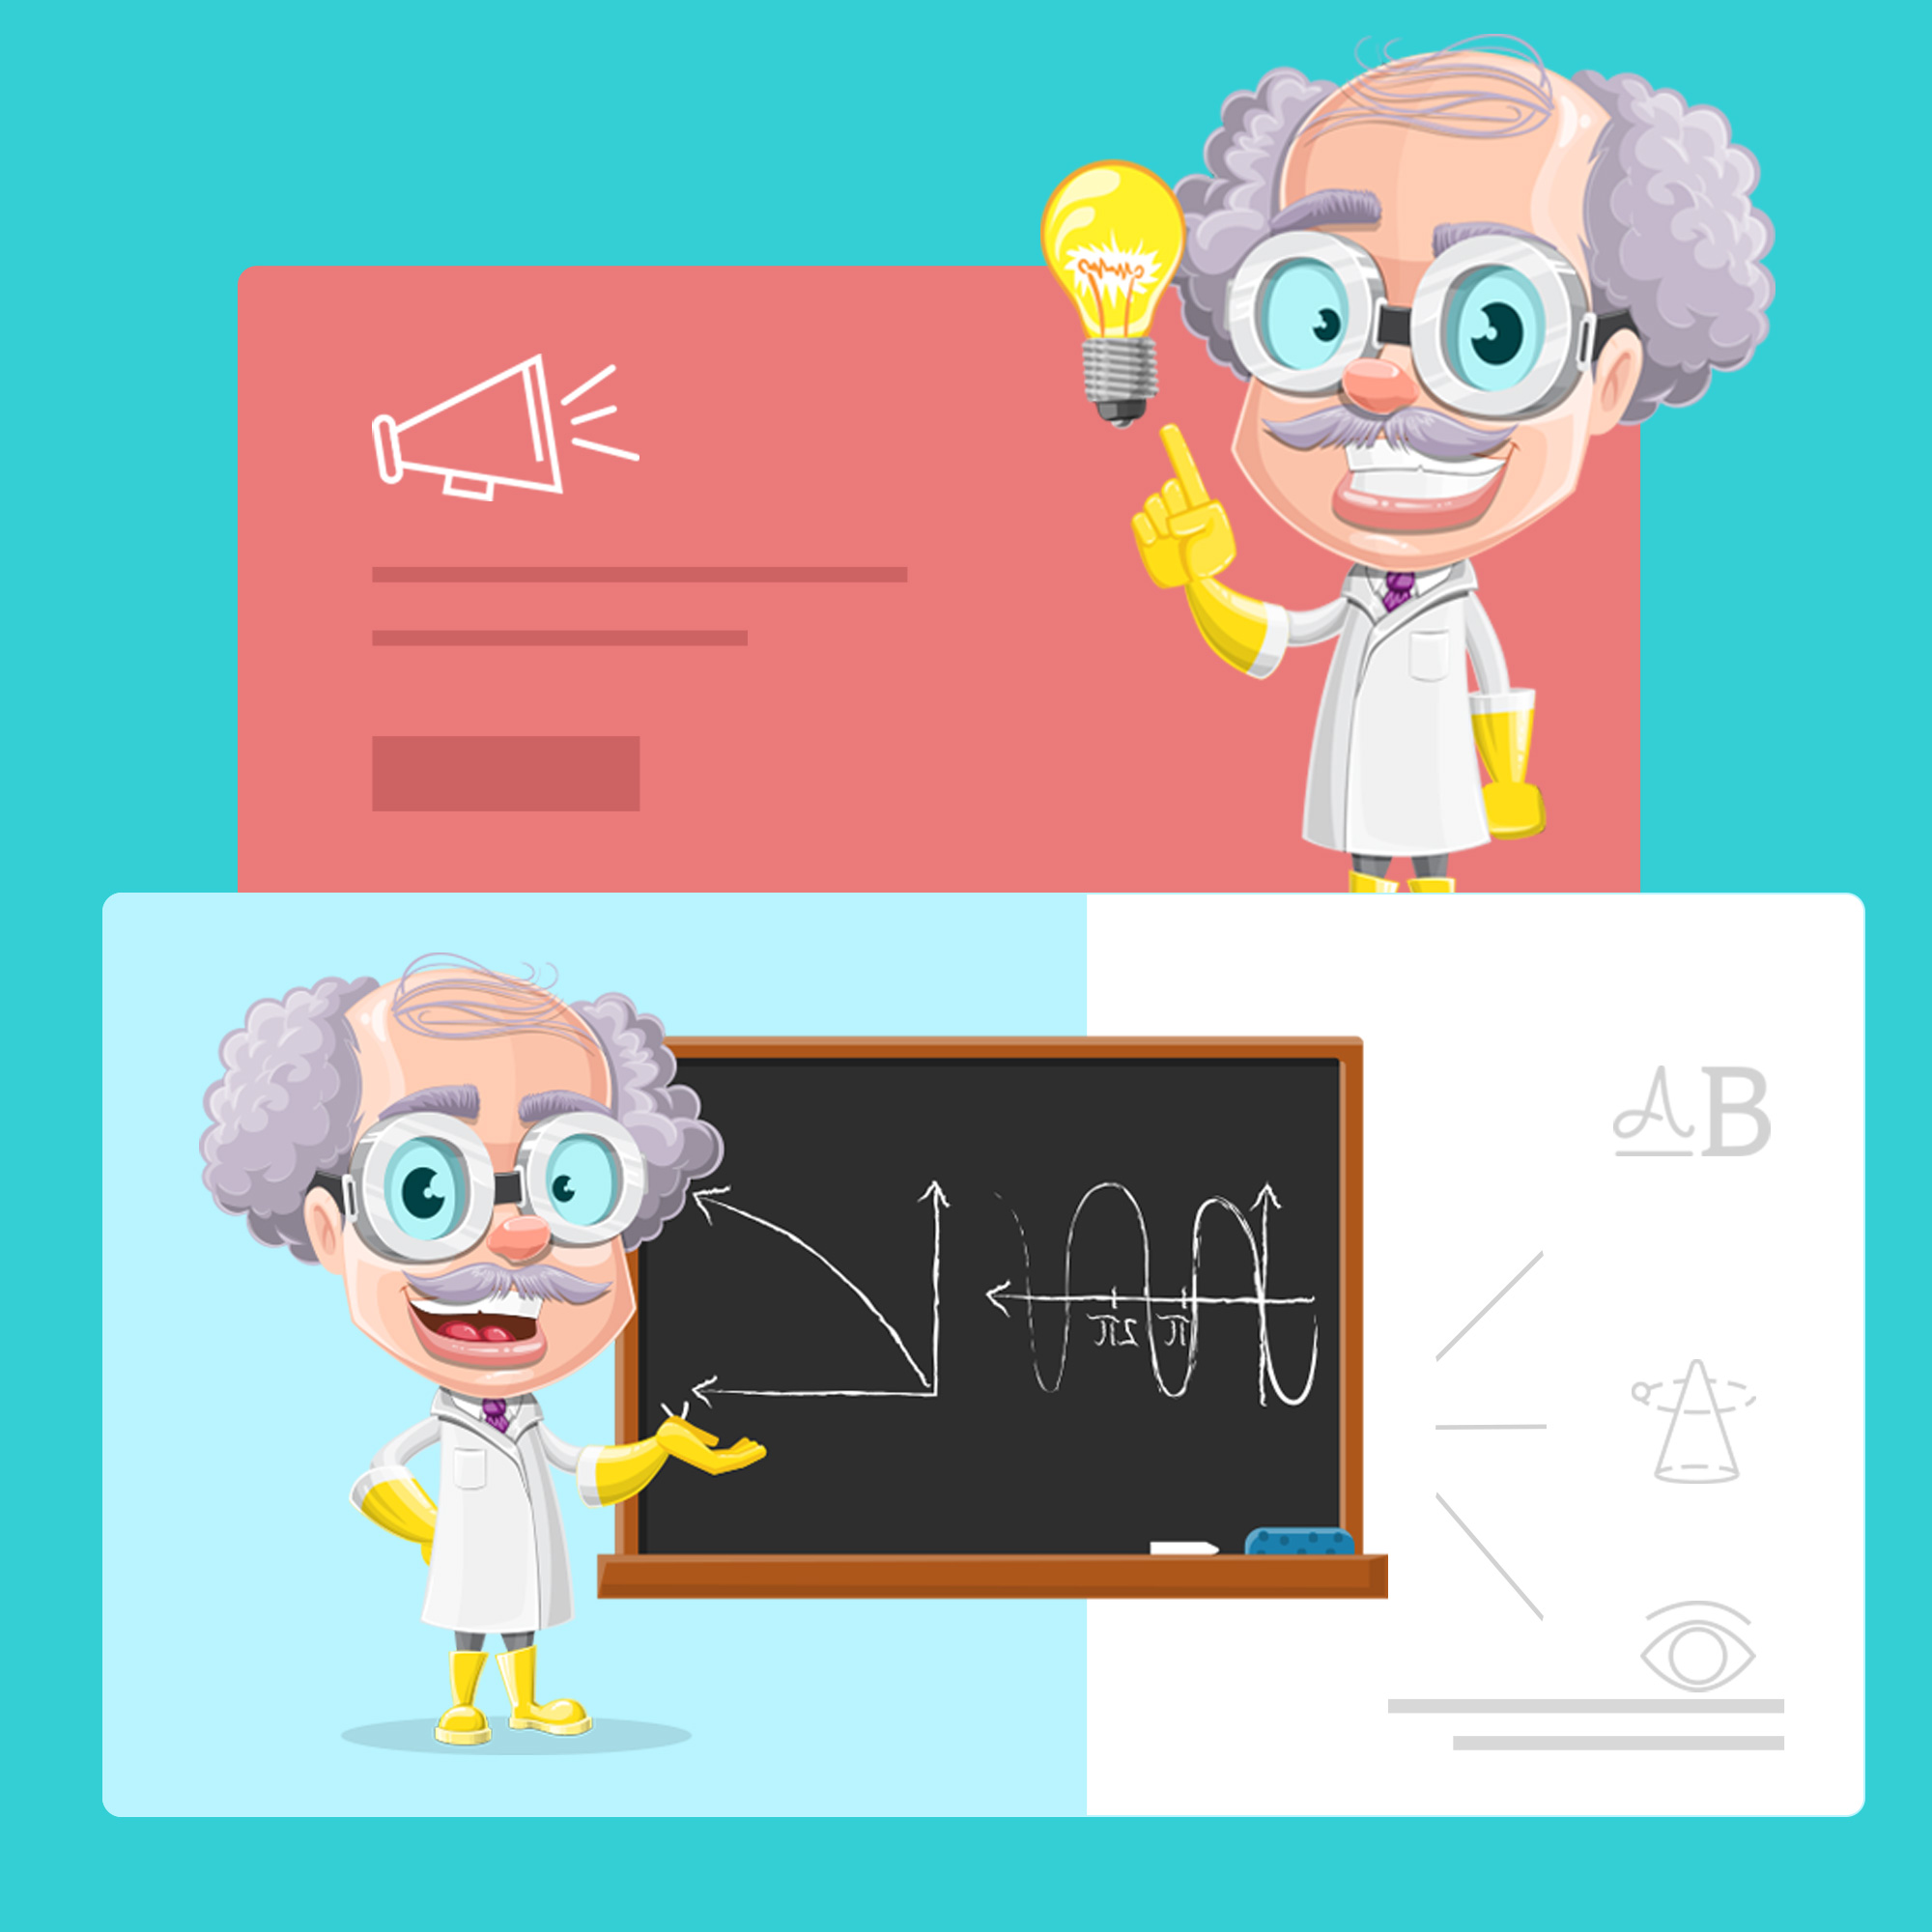 subject matter expert professor cartoon character by GraphicMama